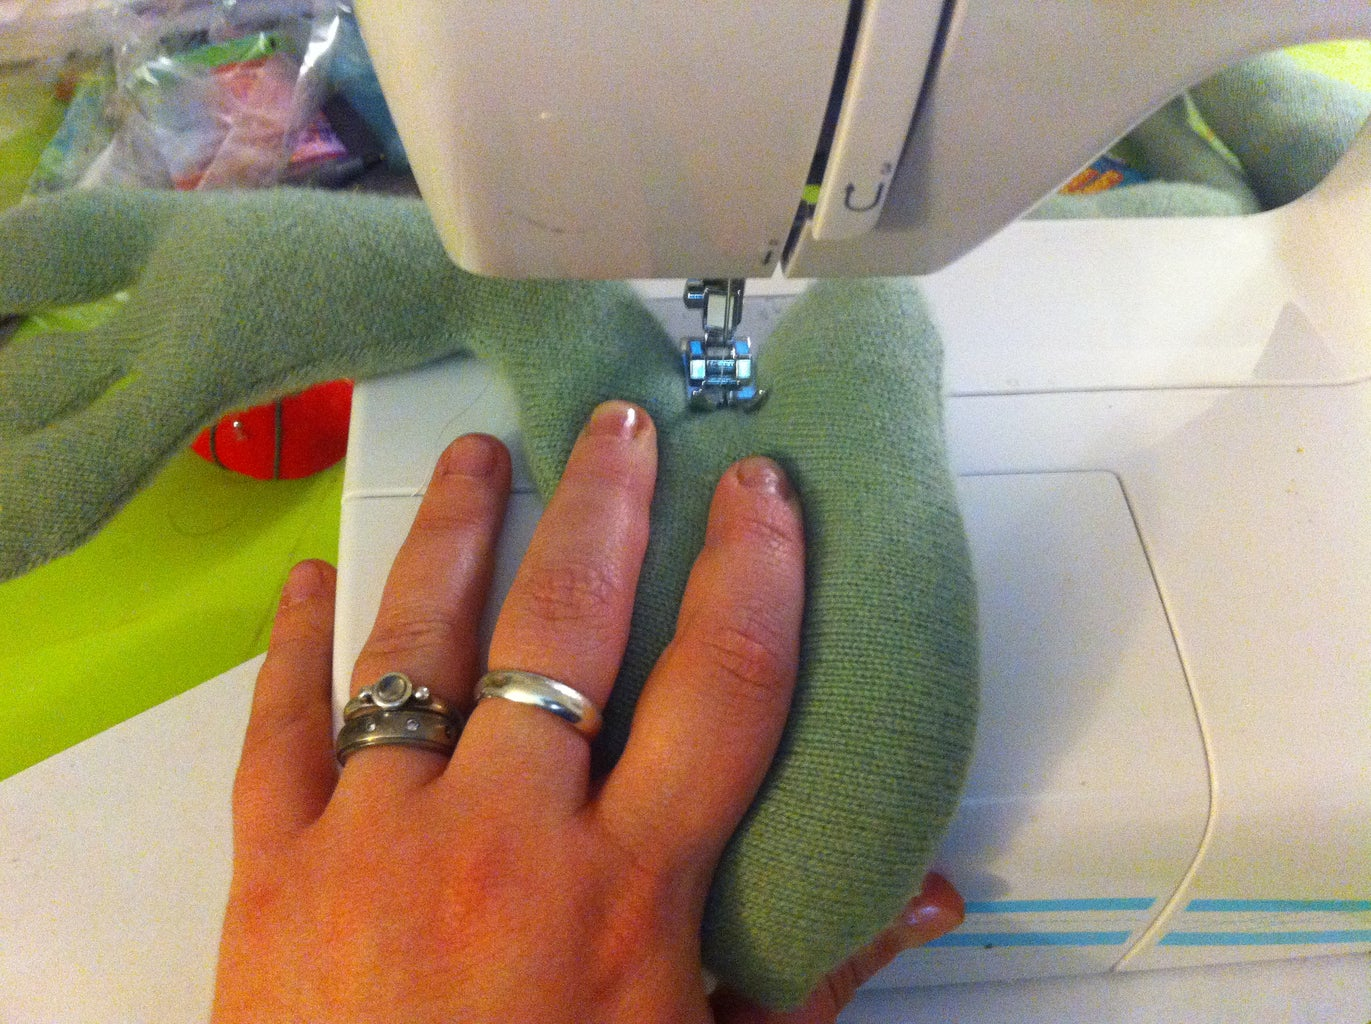 Sew and Stuff Appendages